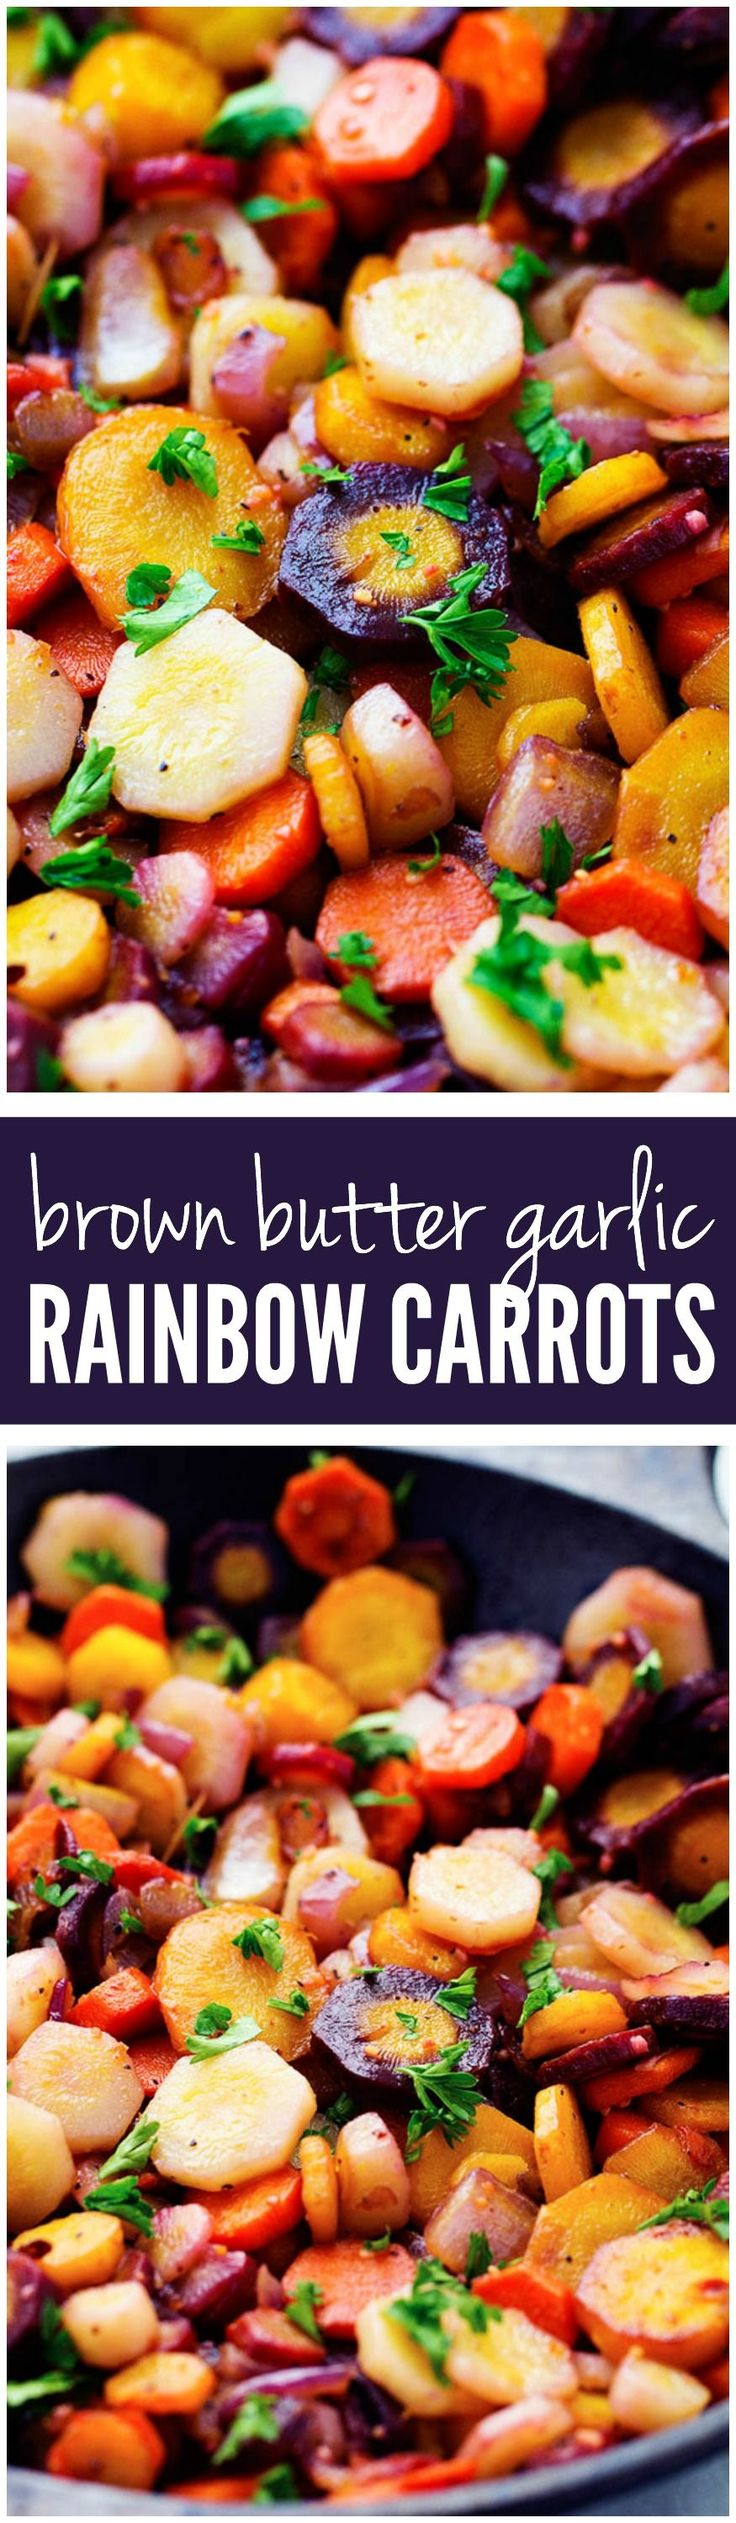 Vibrant colored rainbow carrots get sautéed in brown butter and garlic creating a delicious side dish. They are so tender and flavorful and will become a favorite new side!